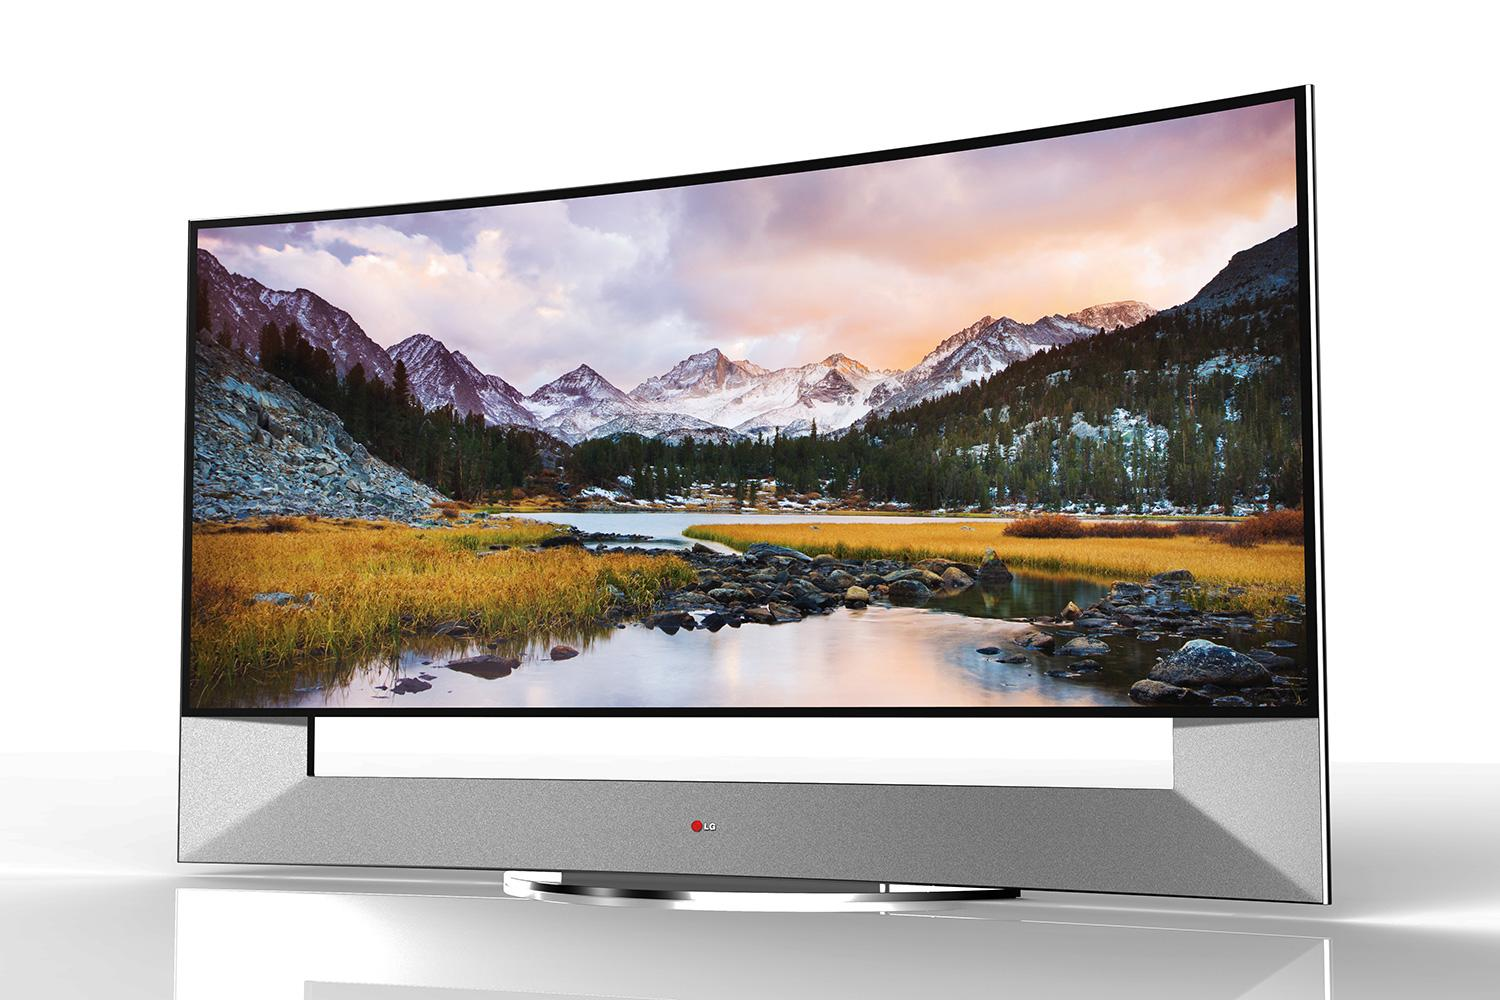 lg announces 105 inch curved 4k ultra hd tv ahead of ces